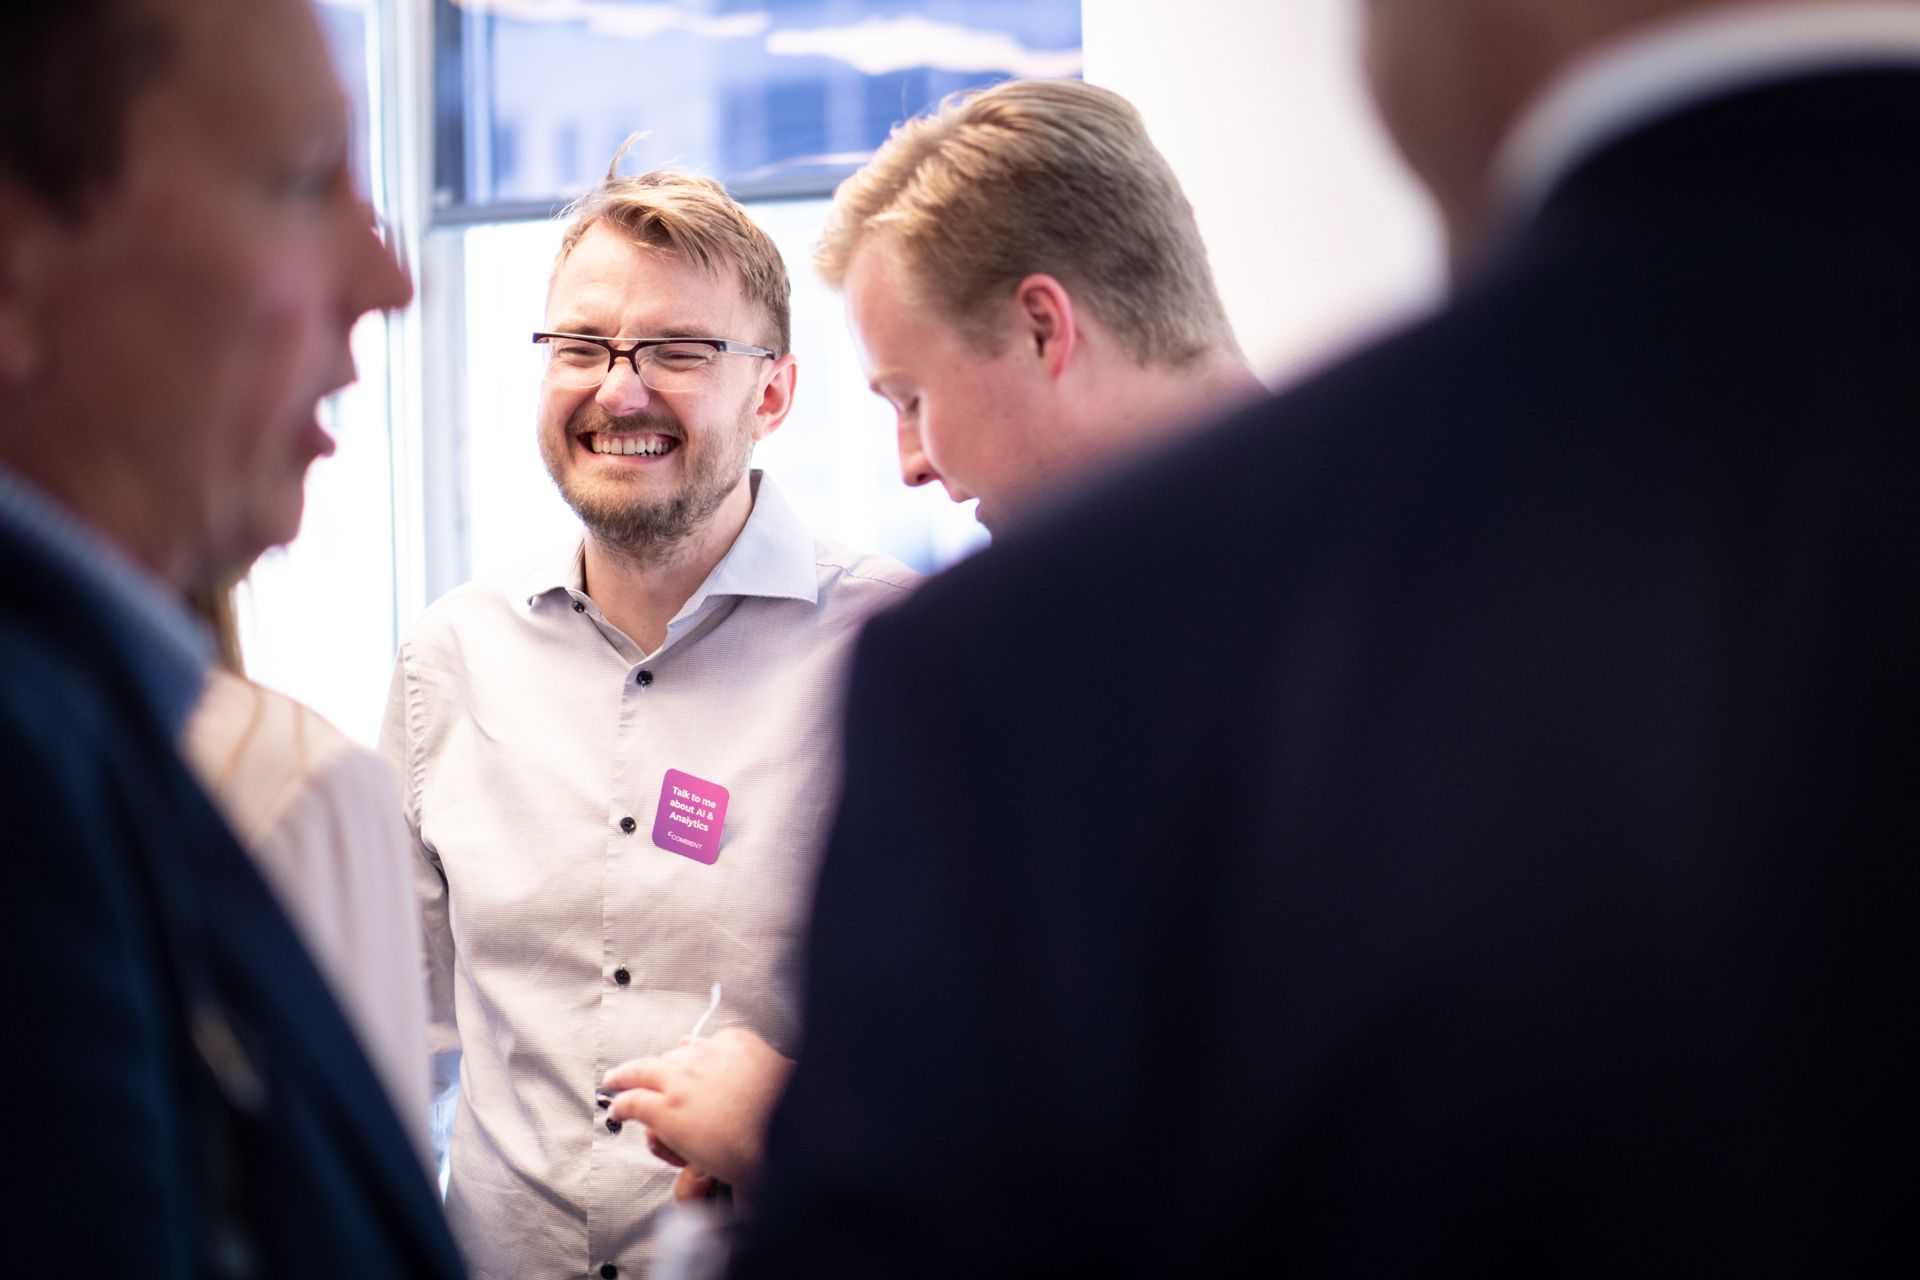 Smiling person at networking